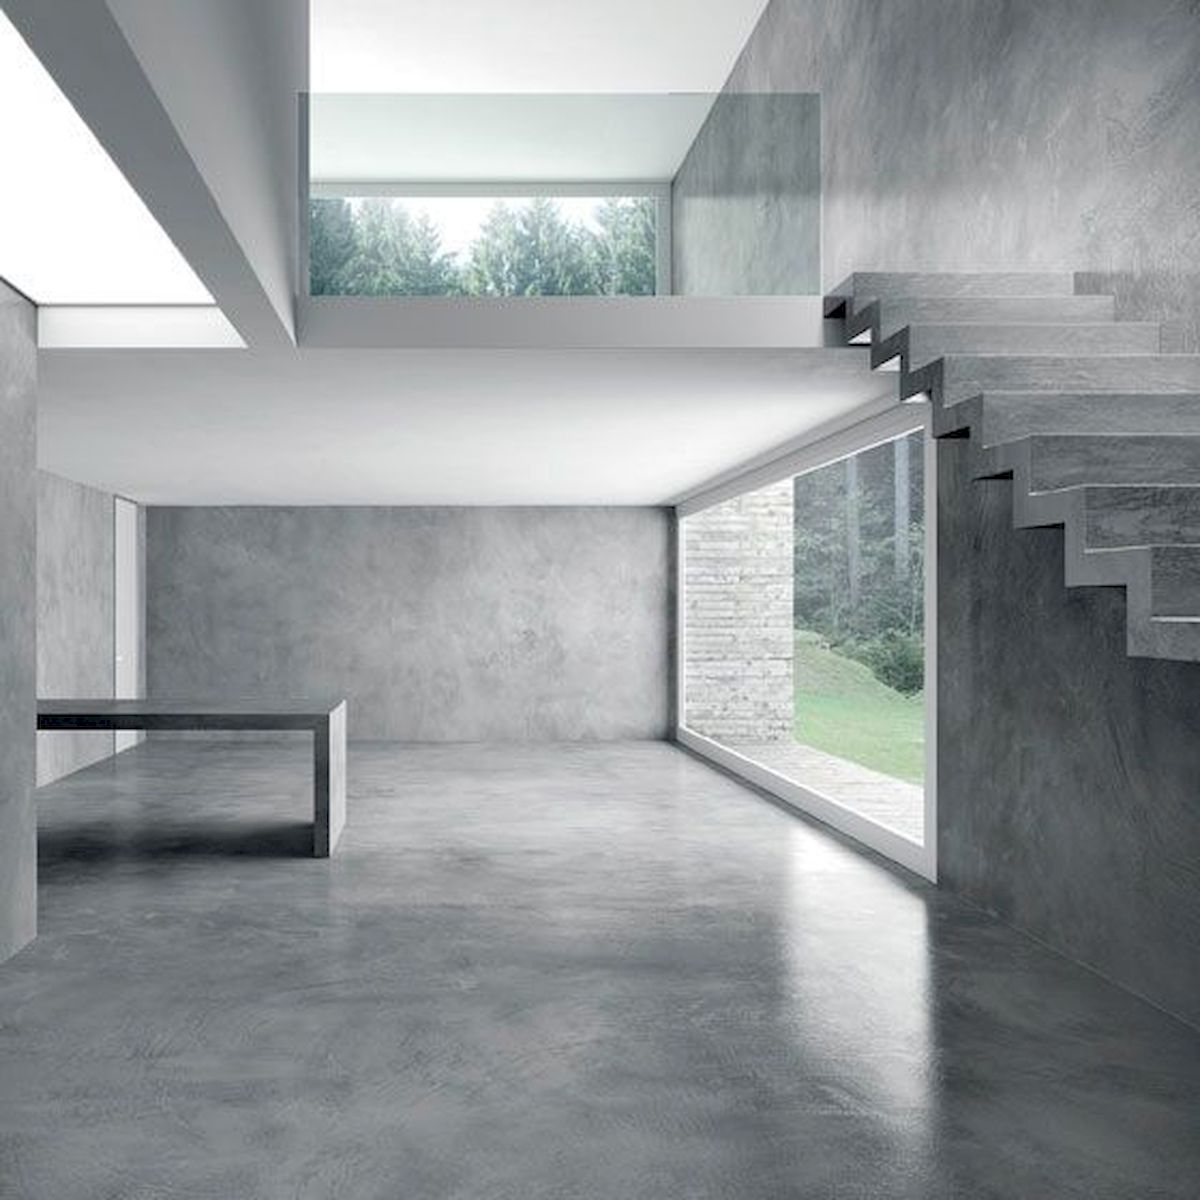 70 Smooth Concrete Floor Ideas for Interior Home (64)